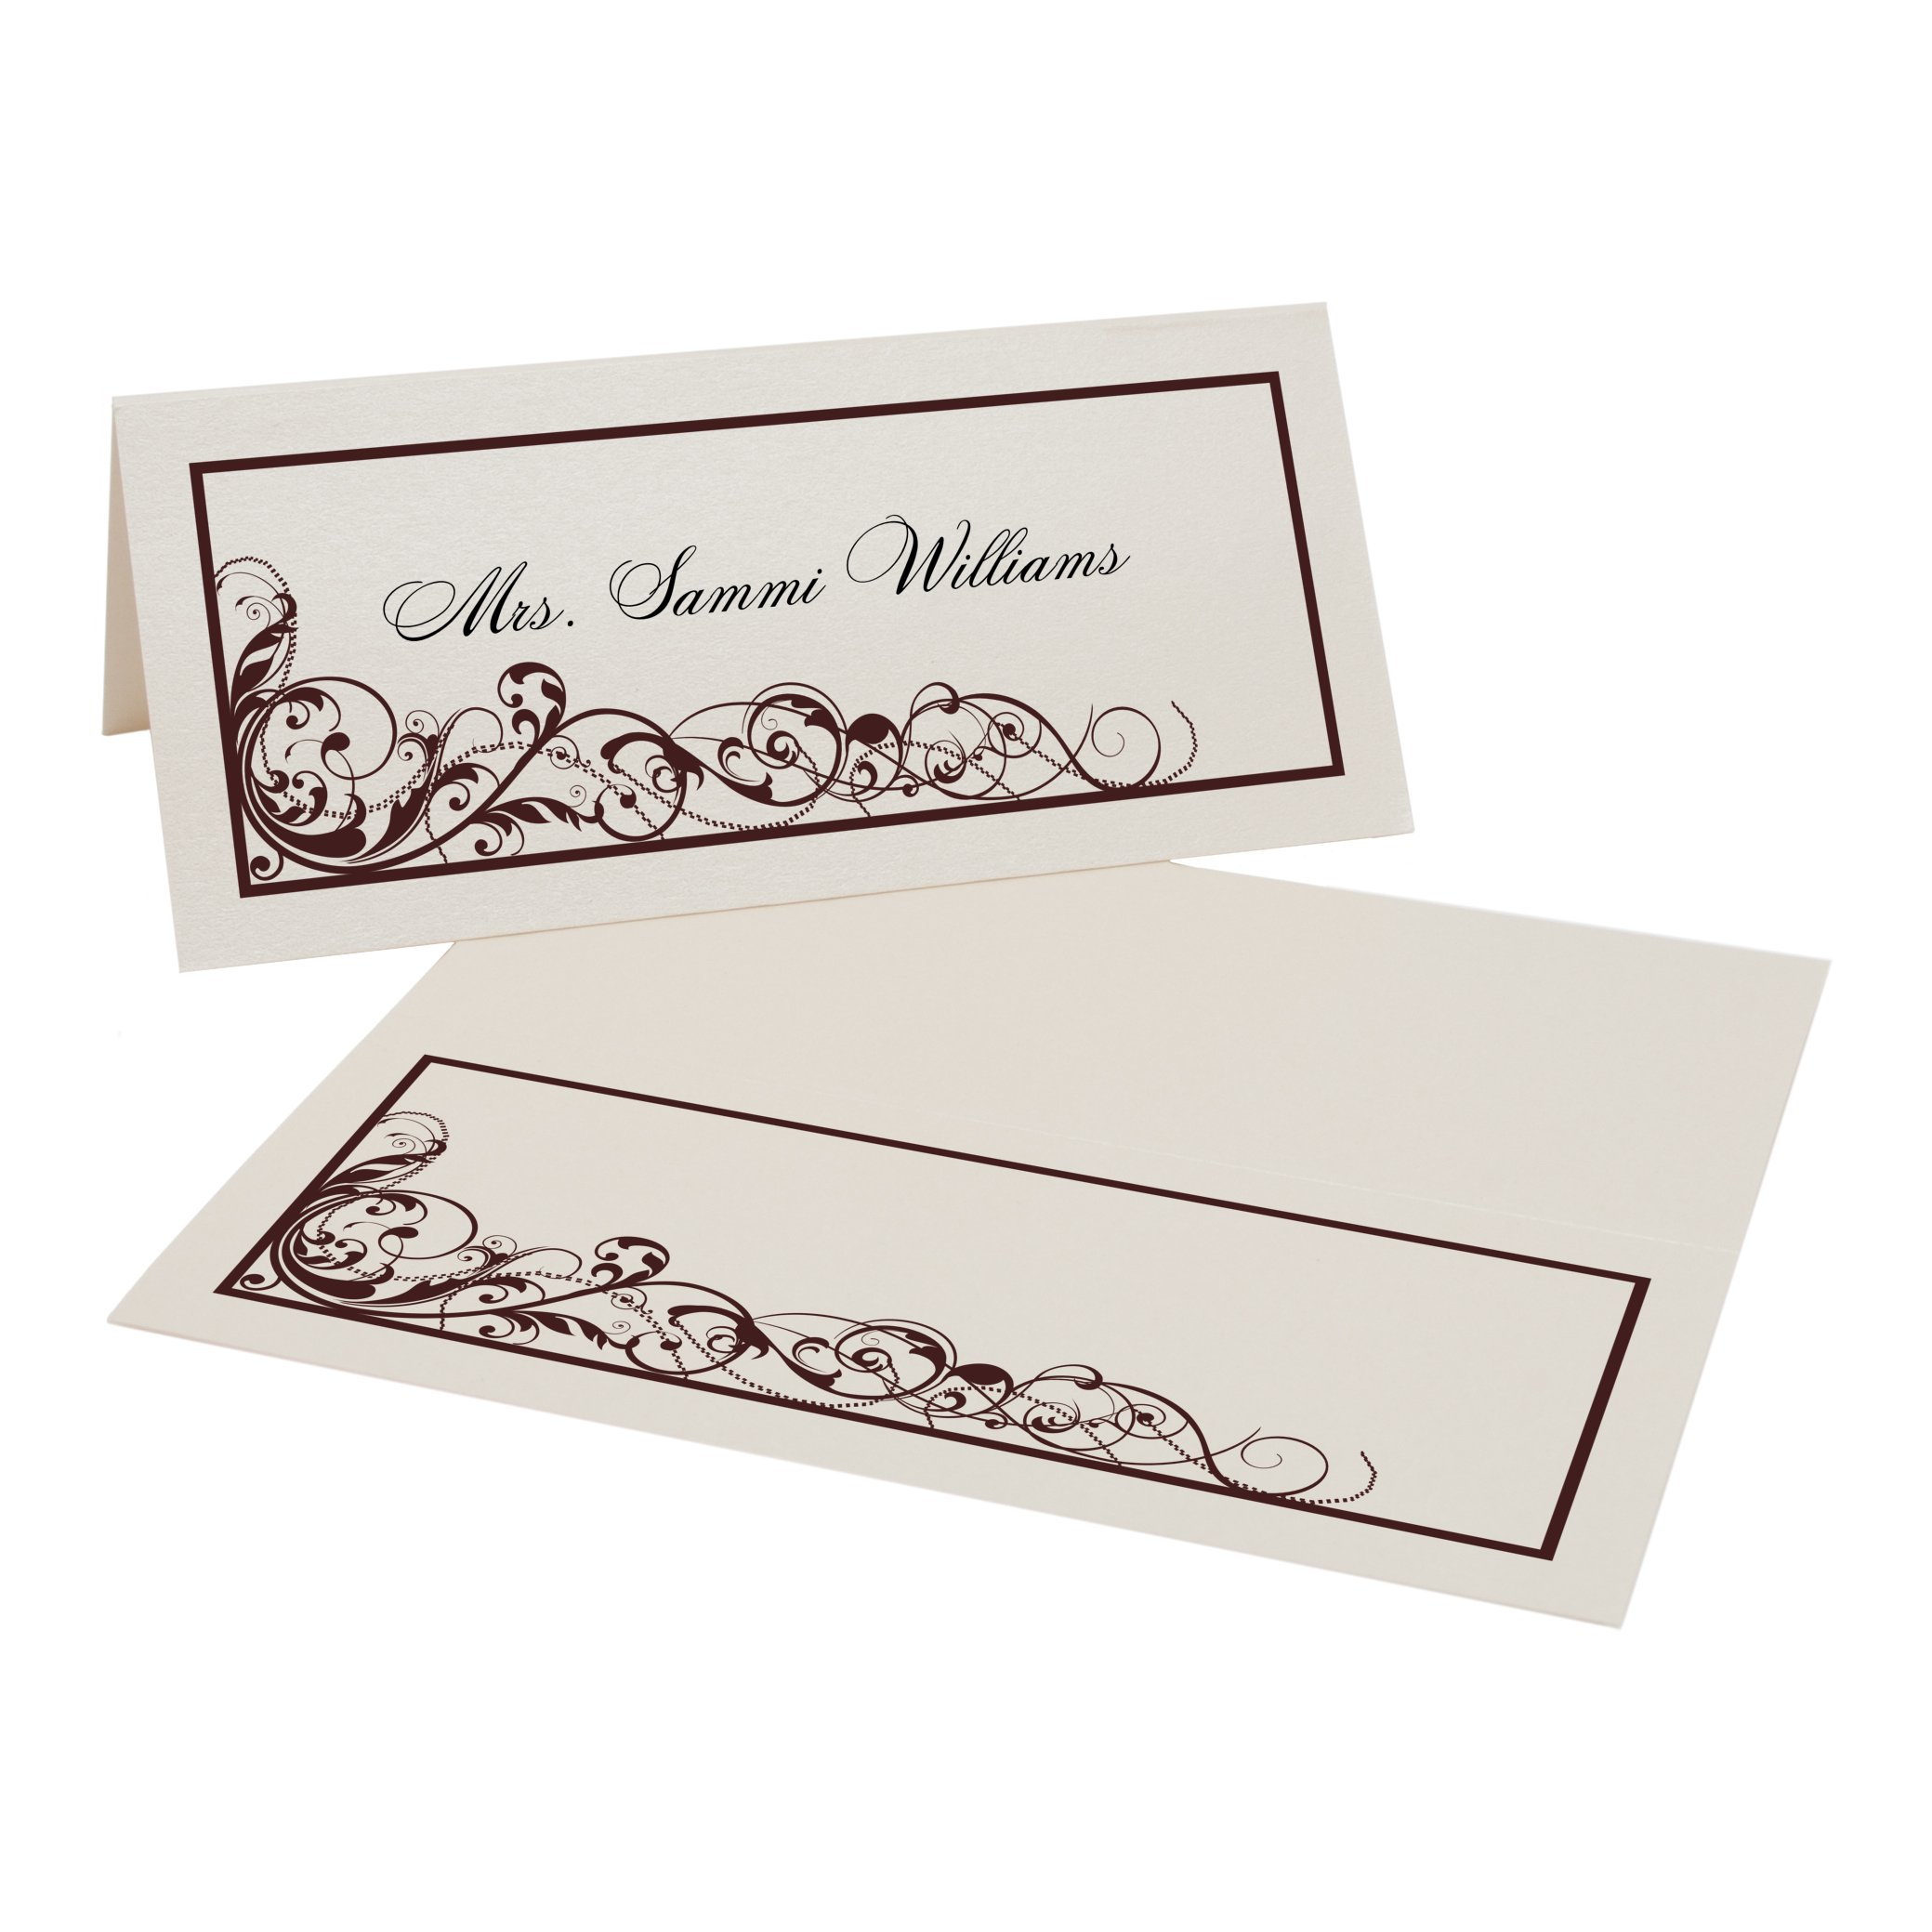 Scribble Vintage Swirl Place Cards, Champagne, Chocolate, Set of 375 by Documents and Designs